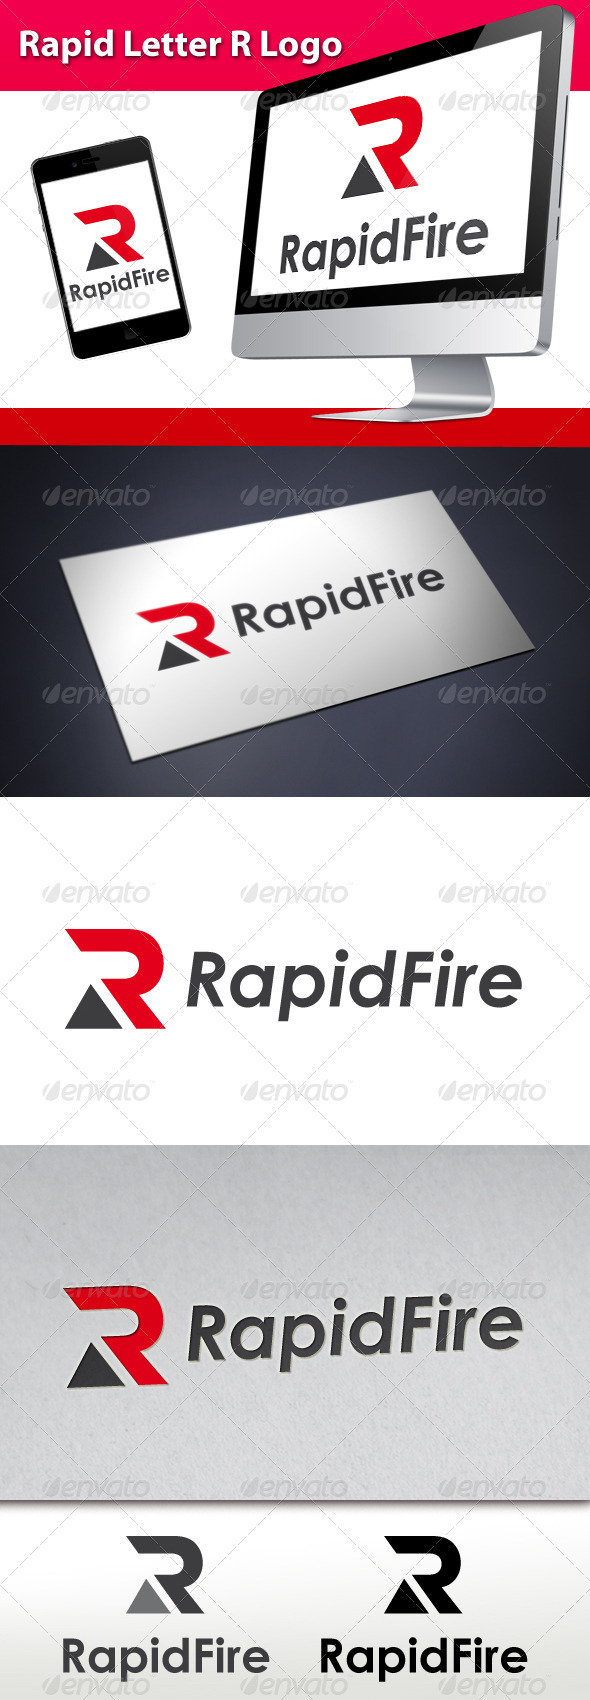 GraphicRiver Rapid Letter R Logo 3472855